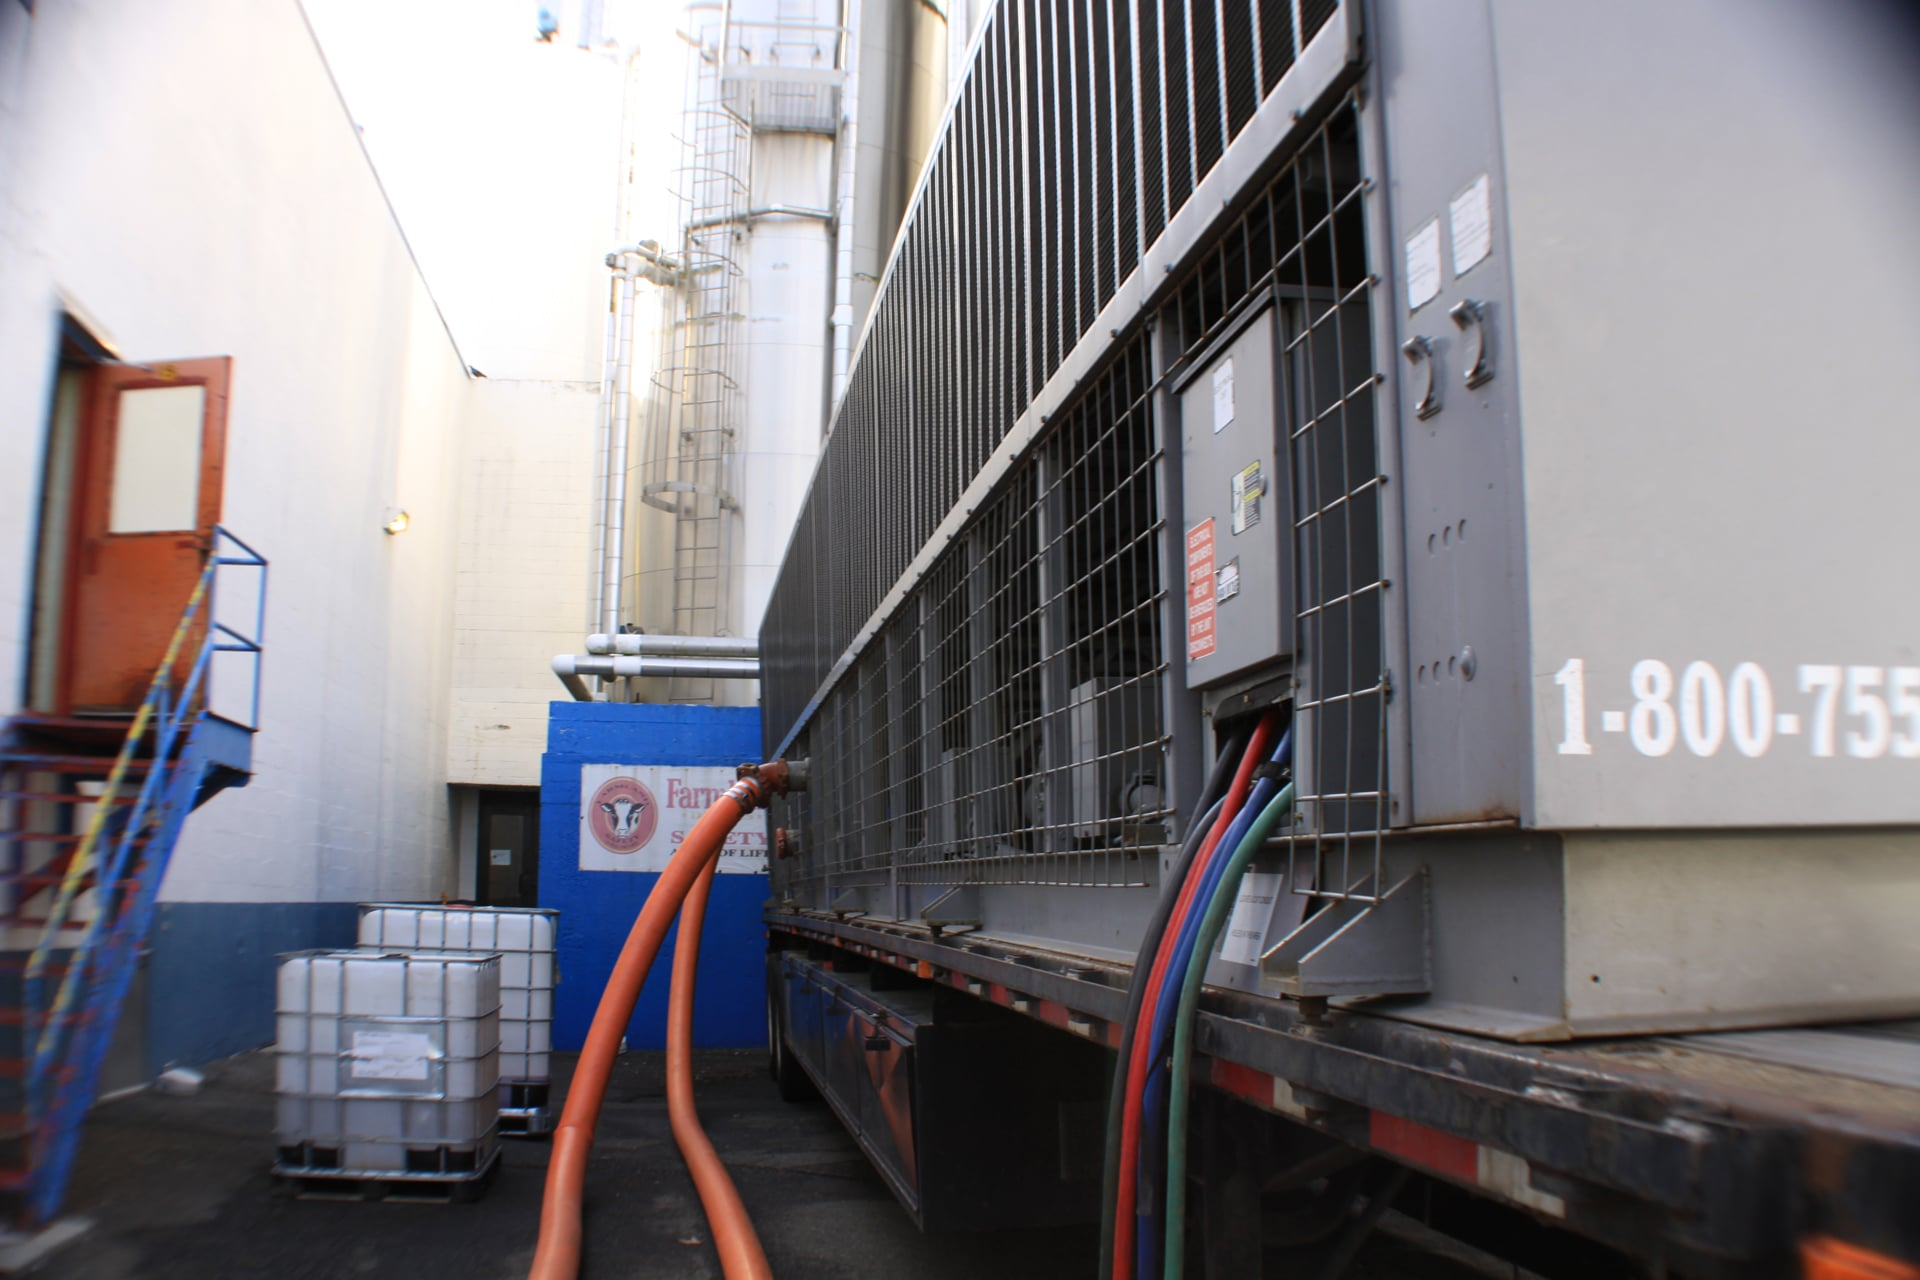 Temporary Chiller Milford CT, Air Cooled Chiller Rental Milford CT